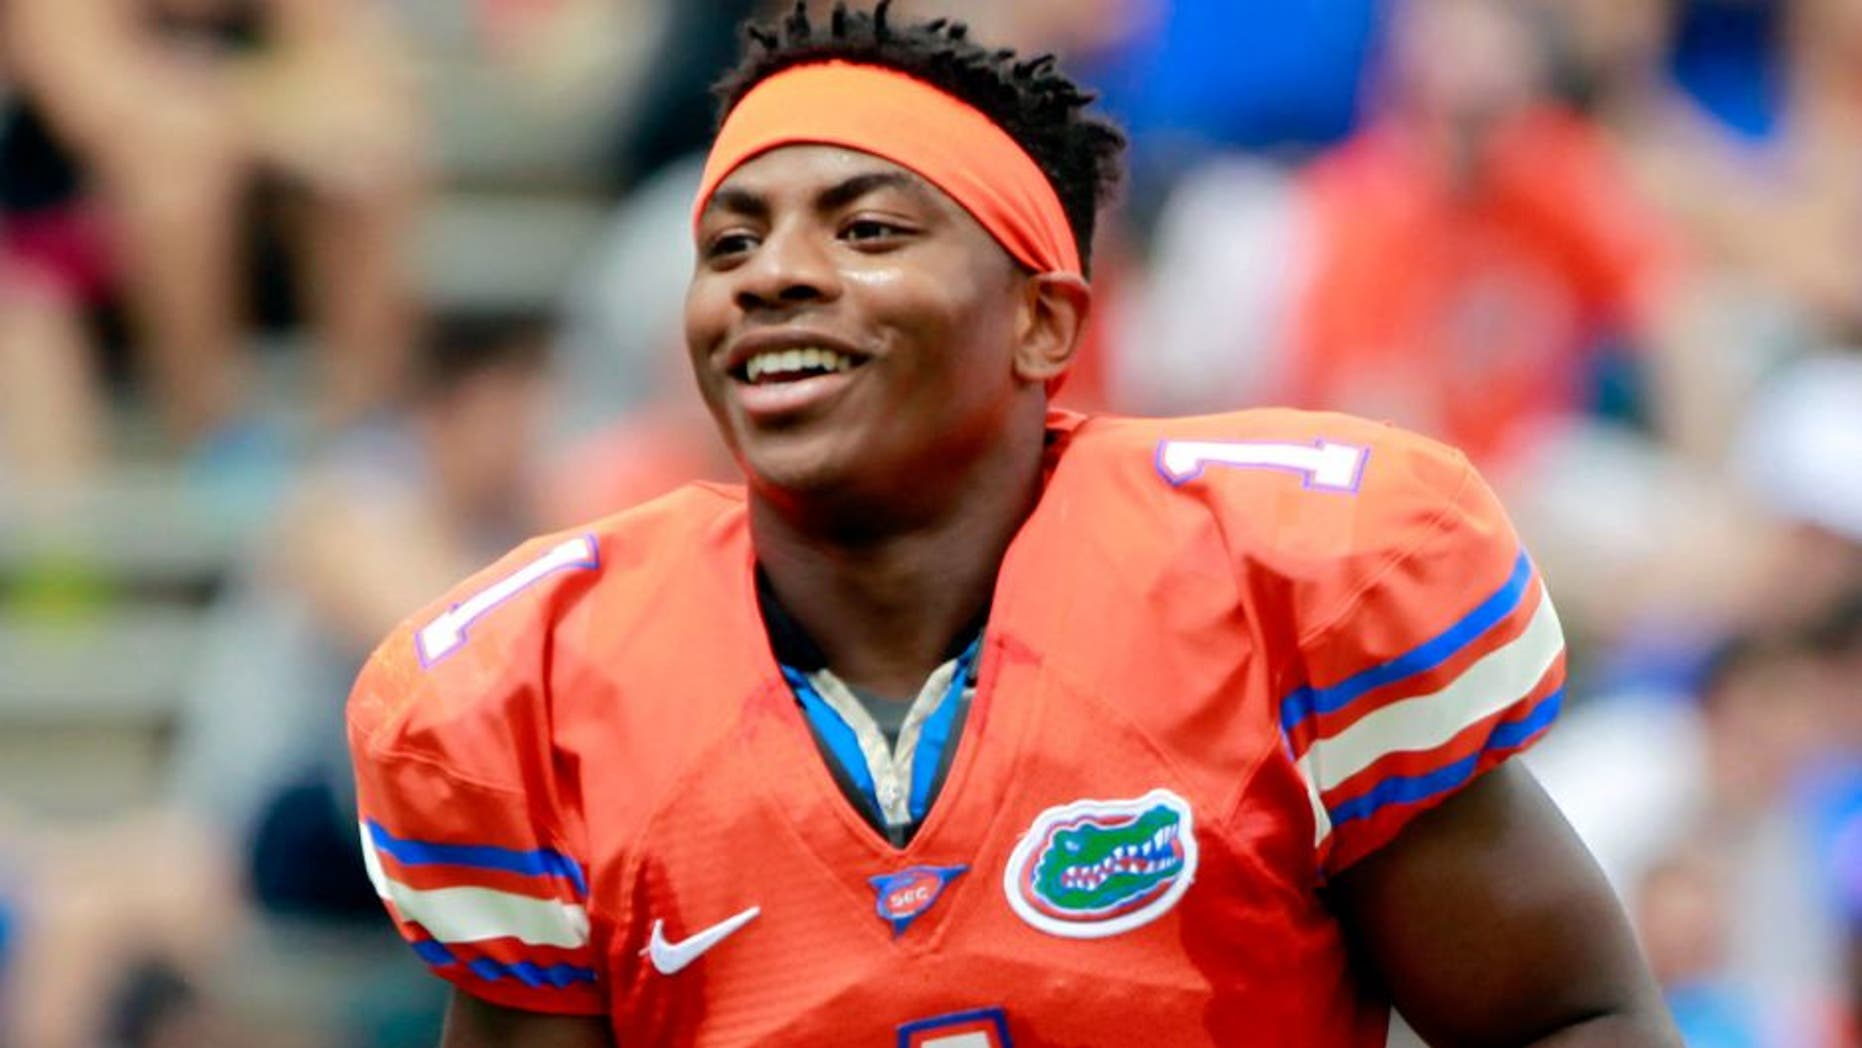 Apr 11, 2015; Gainesville, FL, USA; Florida Gators defensive back Vernon Hargreaves III (1) during the first half at the Orange and Blue Debut at Ben Hill Griffin Stadium. Mandatory Credit: Kim Klement-USA TODAY Sports